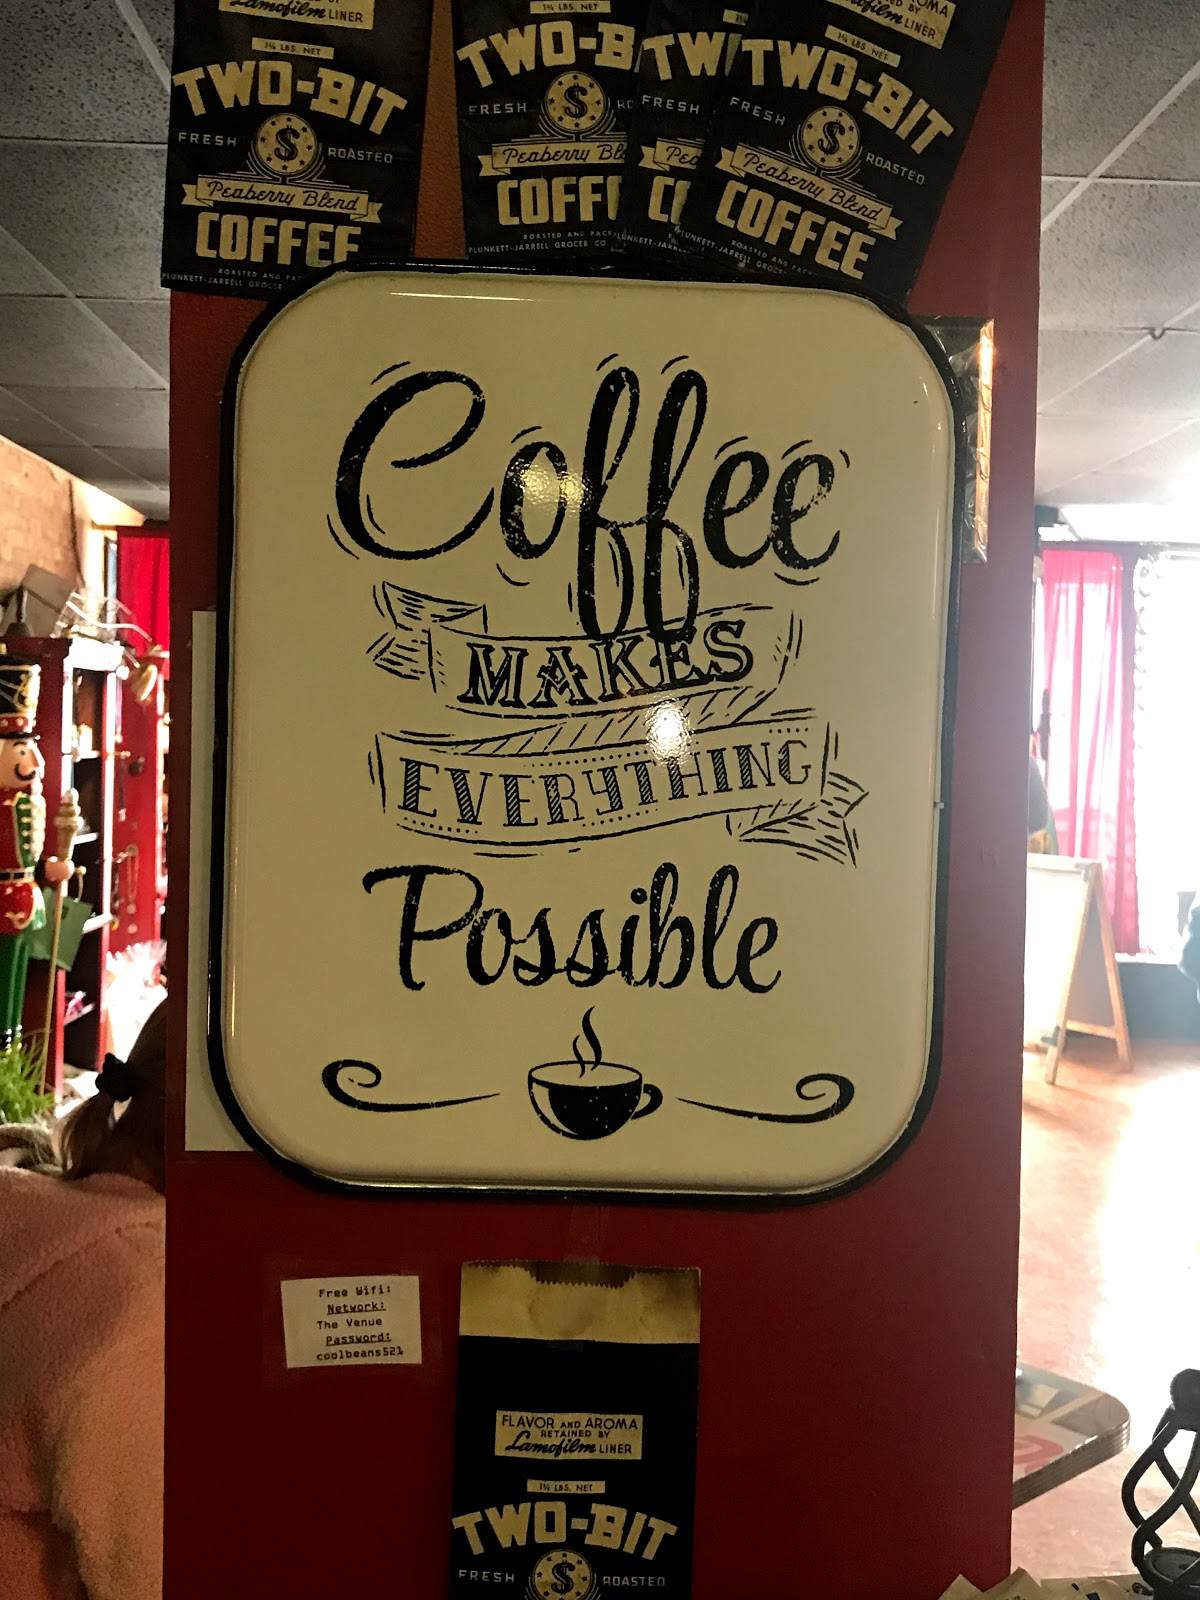 Image: Coffee Sign Where woman sits and share her goals with hopes of inspiring others not to forget their goals for the year.